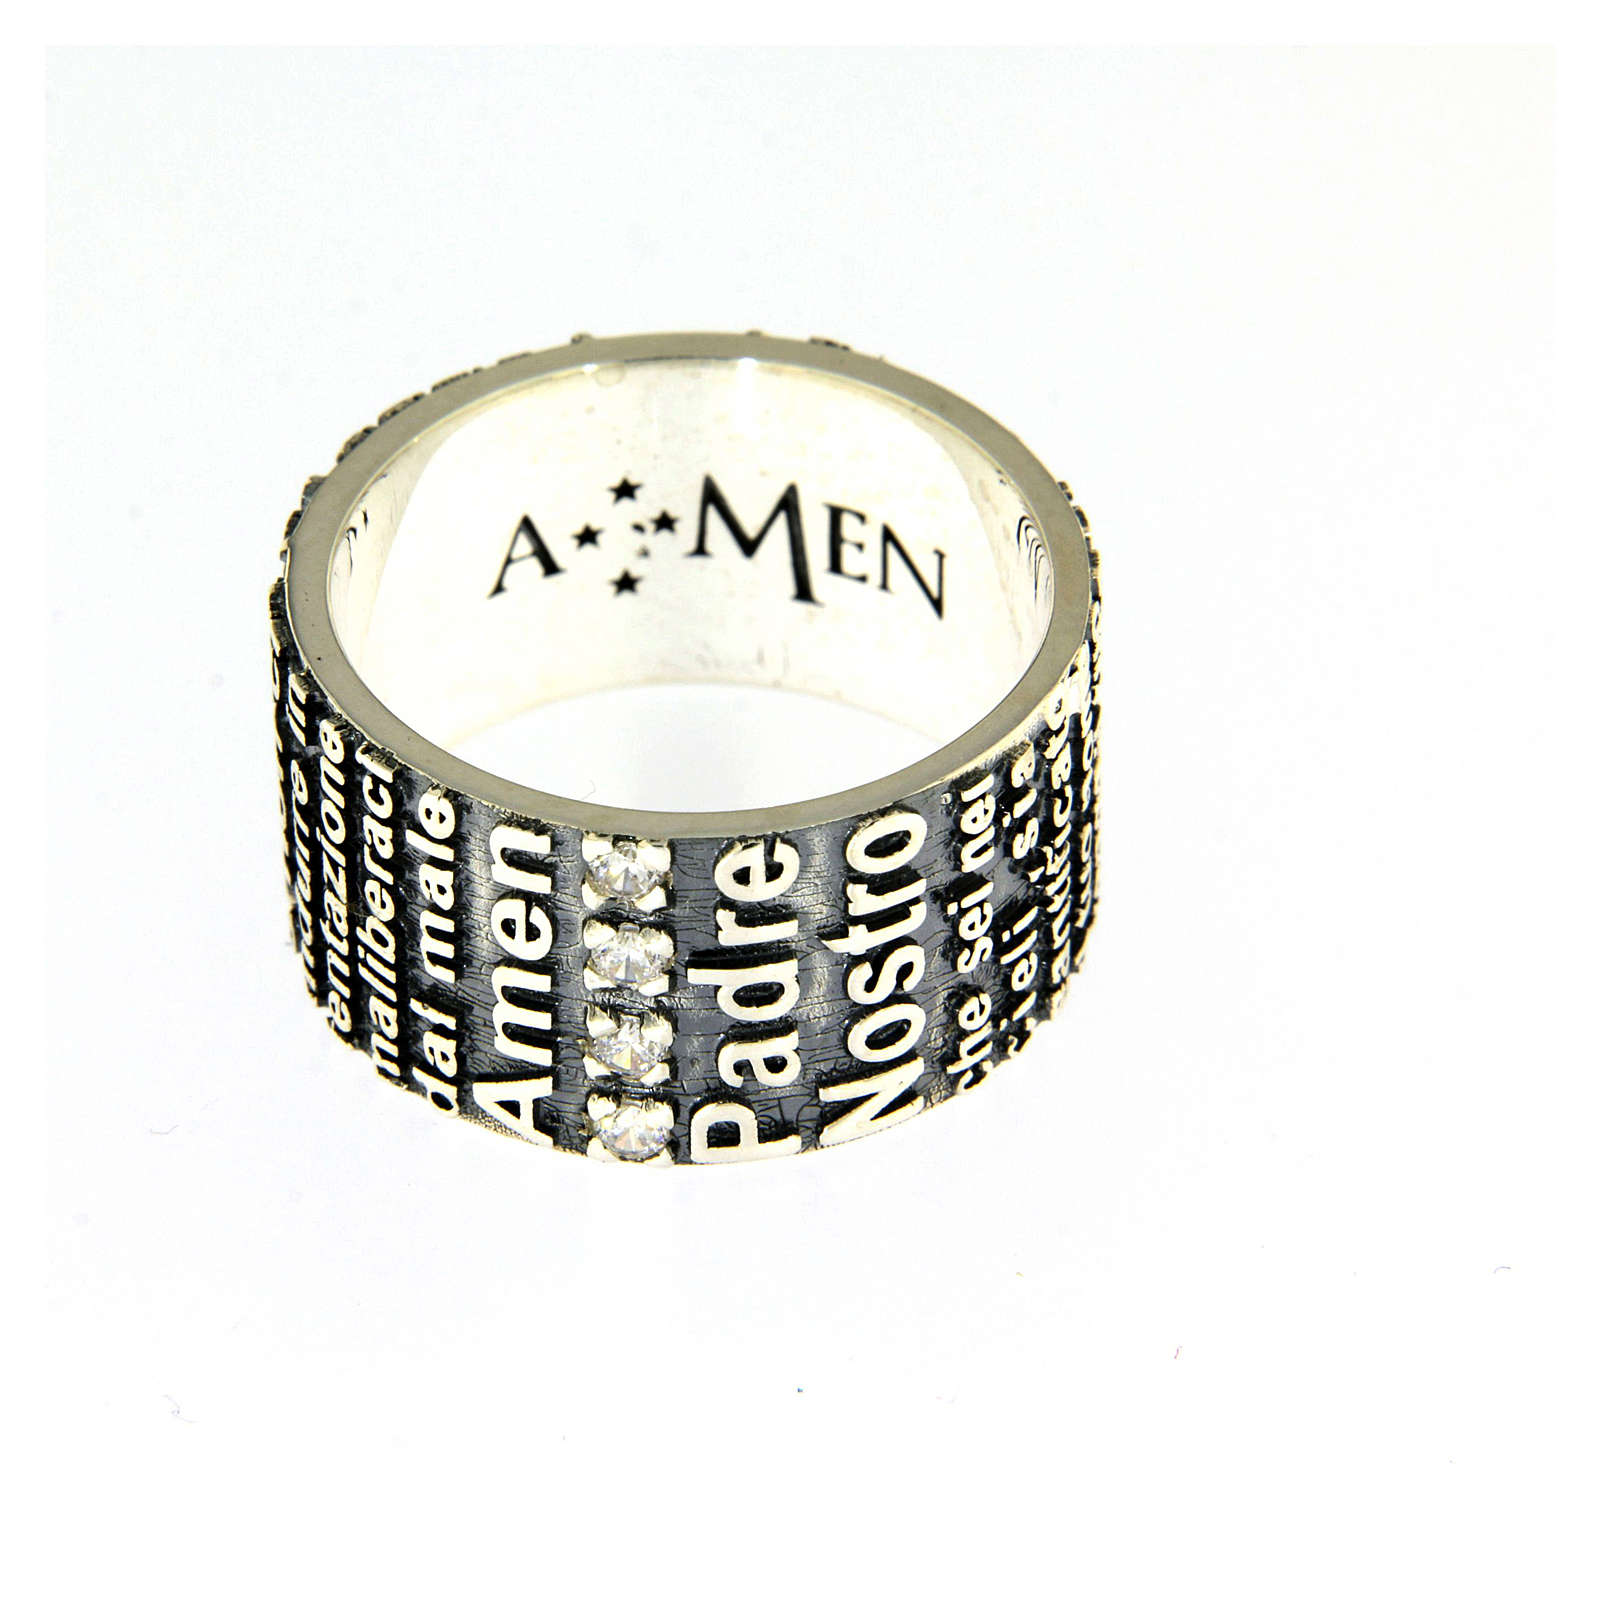 Amen ring in 925 sterling silver, burnished, with Our Father prayer 3